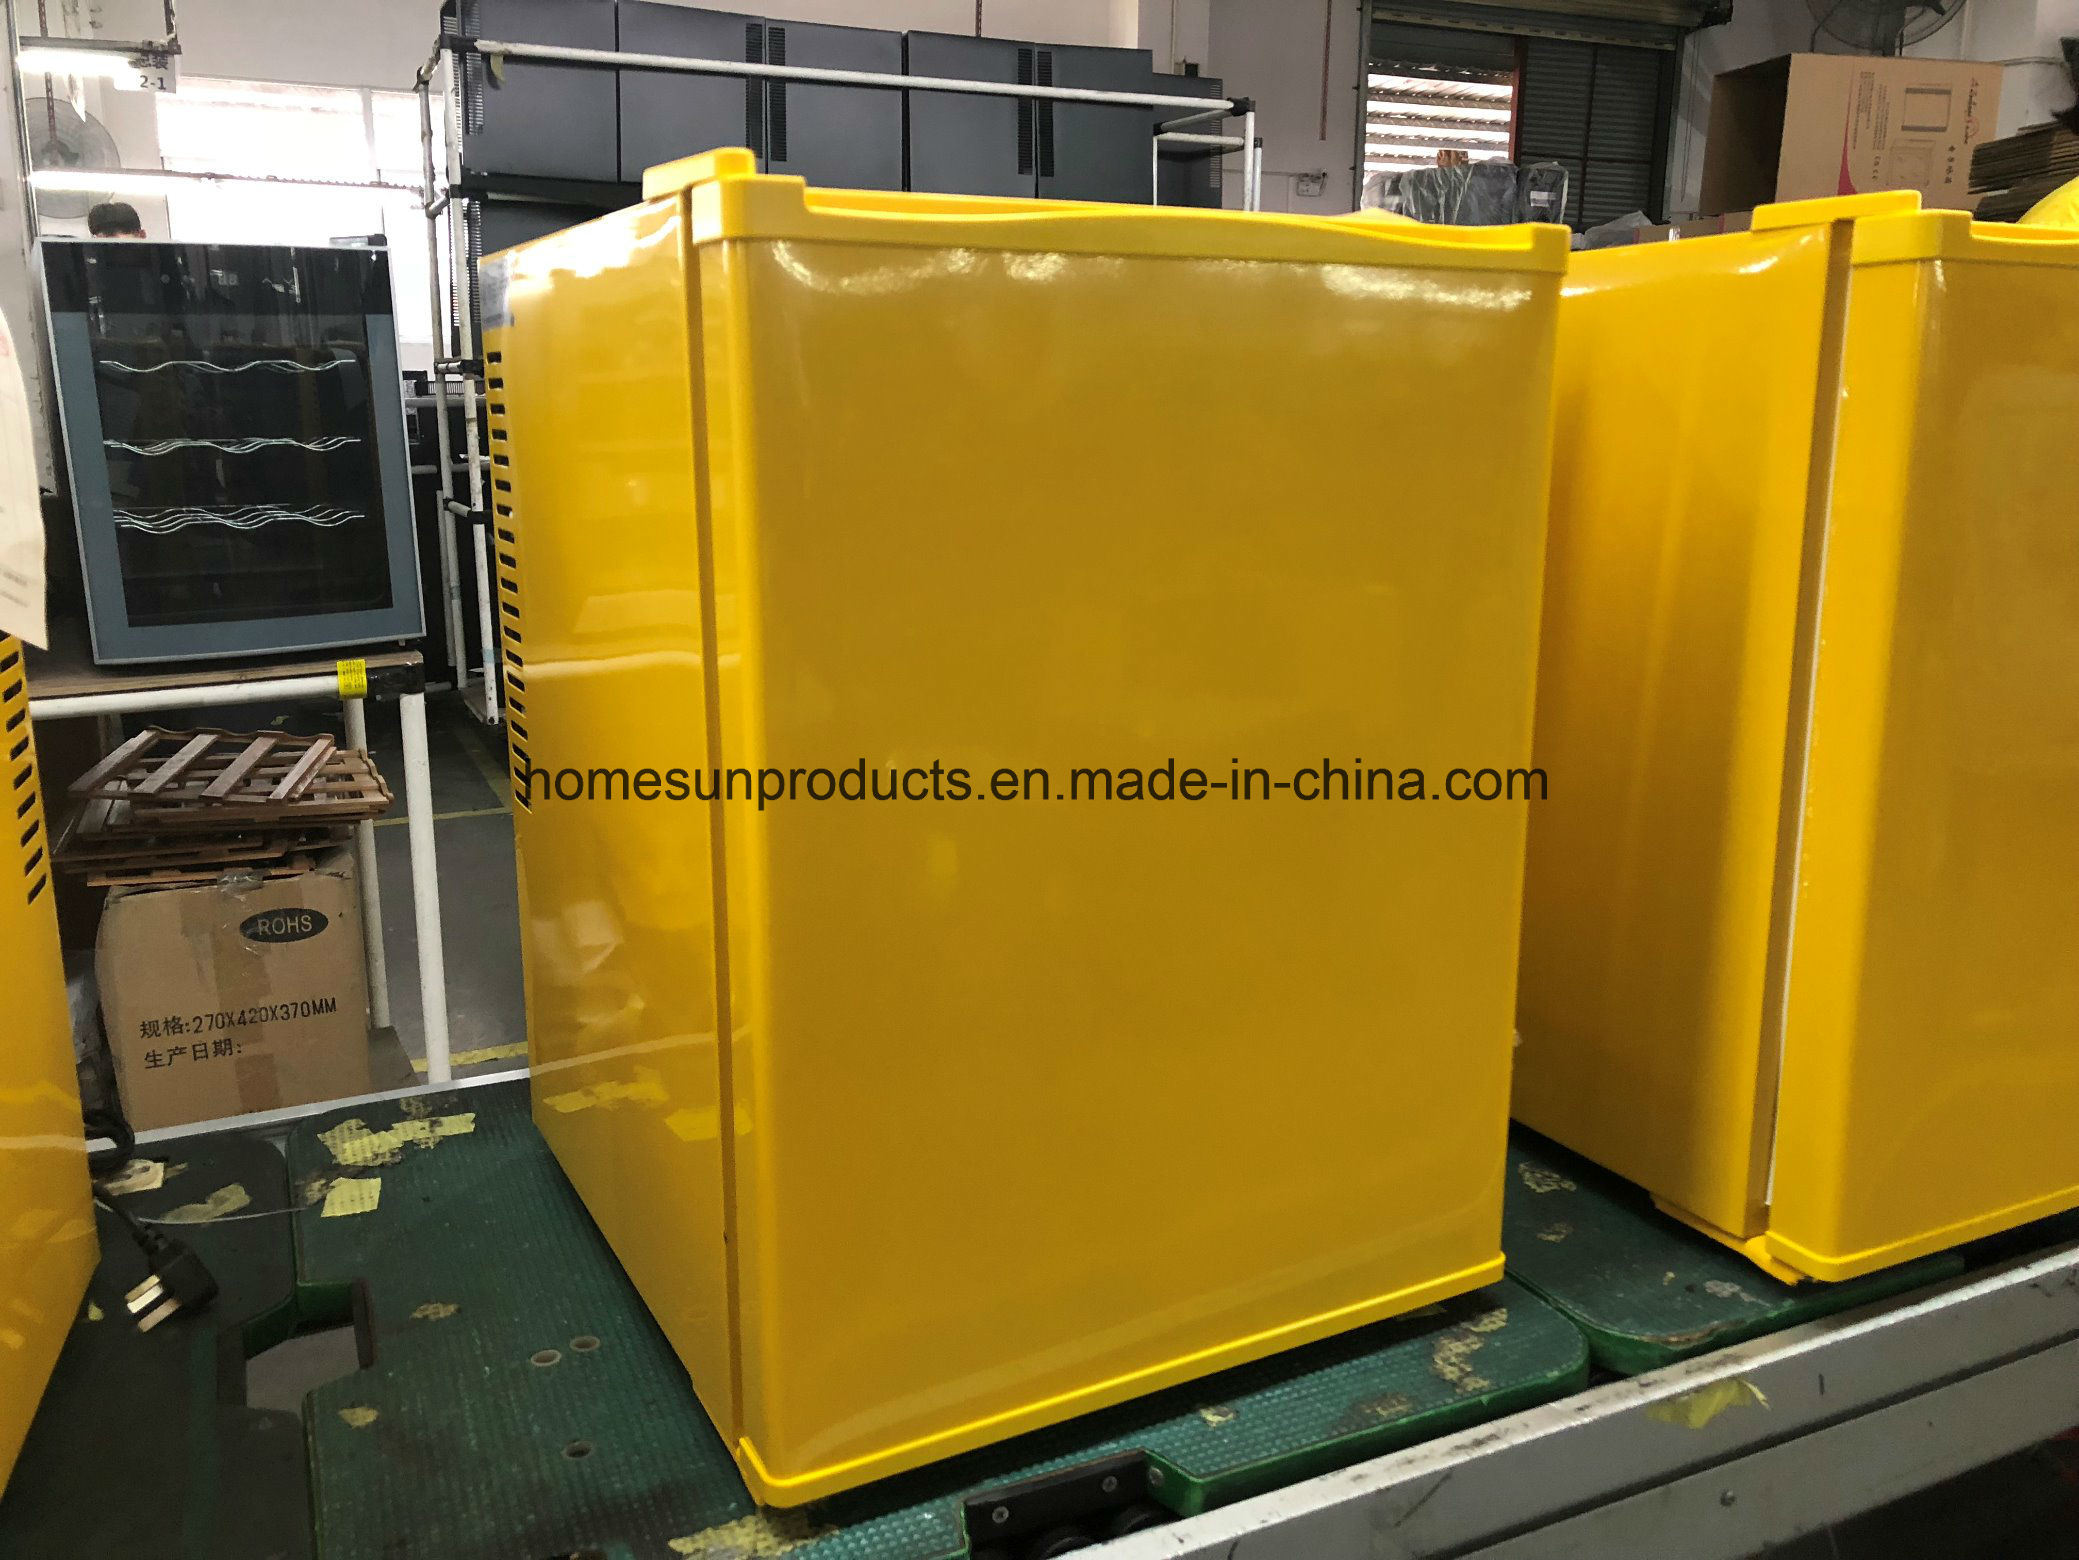 China New Yellow/Customized Color Thermoelectric/Peltier Mini Fridge